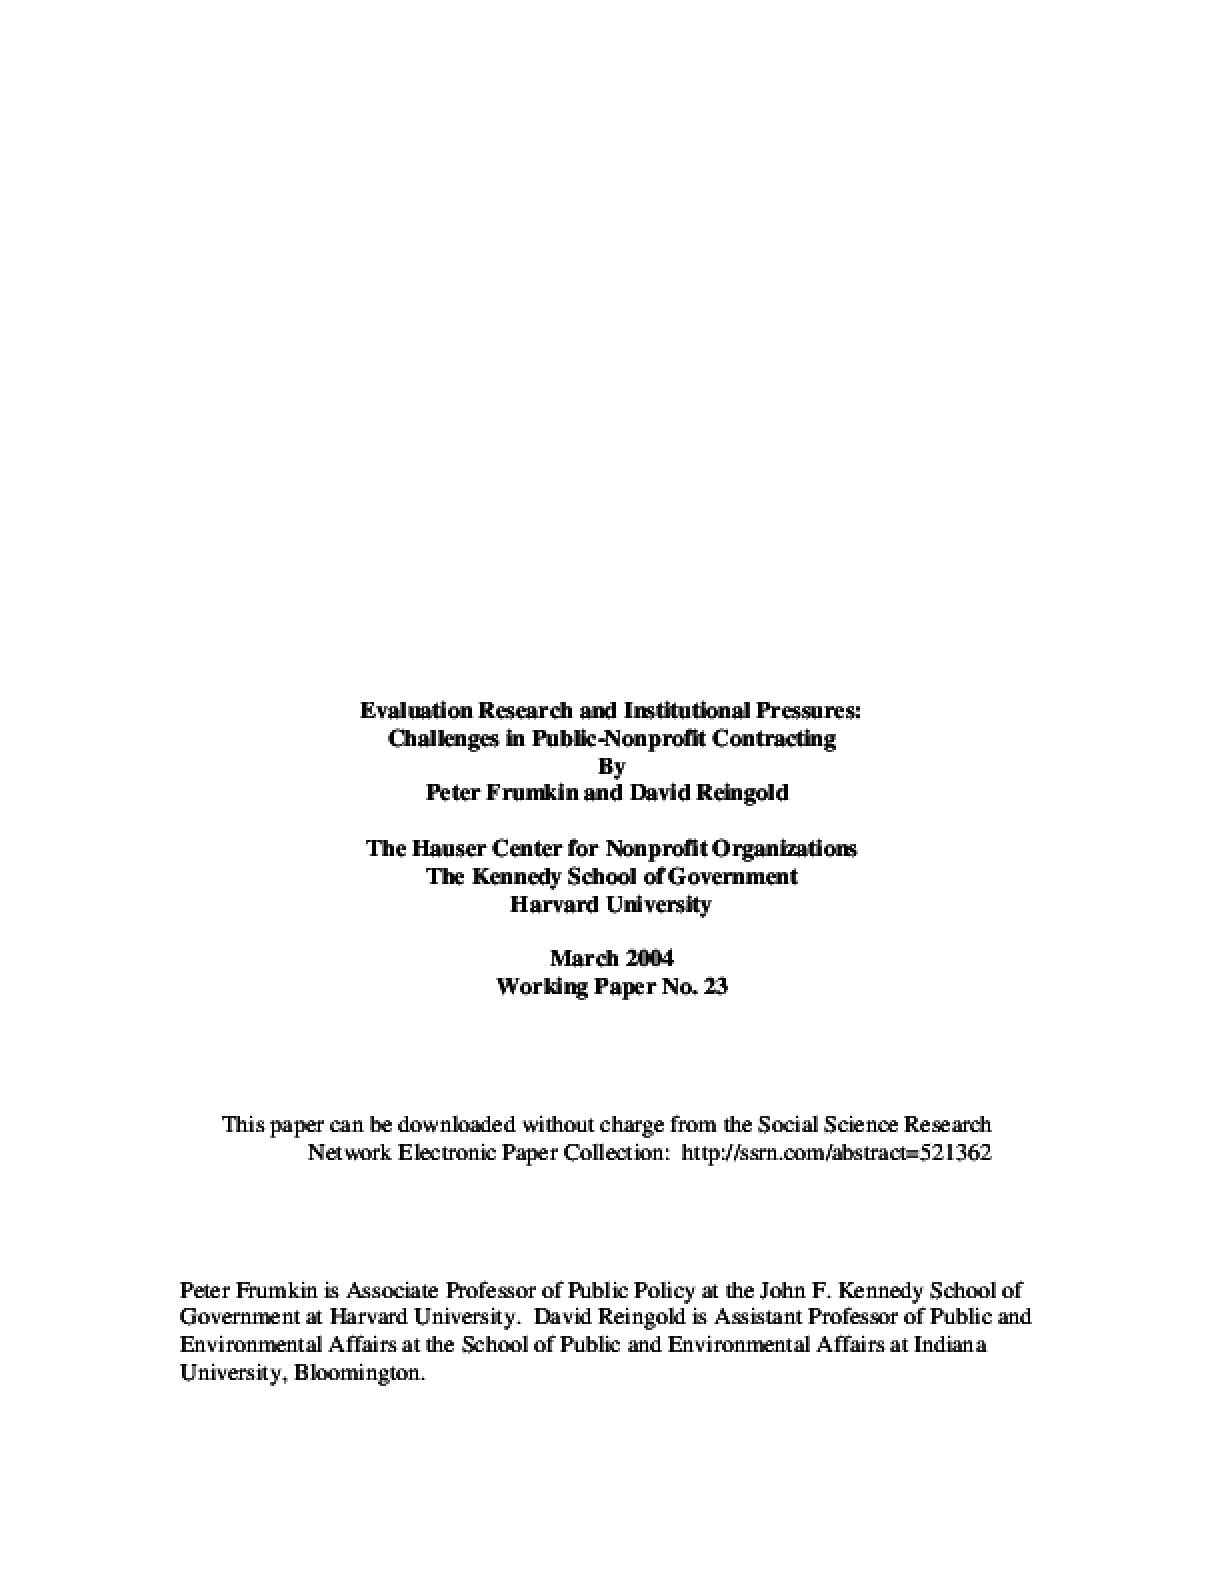 Evaluation Research and Institutional Pressures: Challenges in Public-Nonprofit Contracting